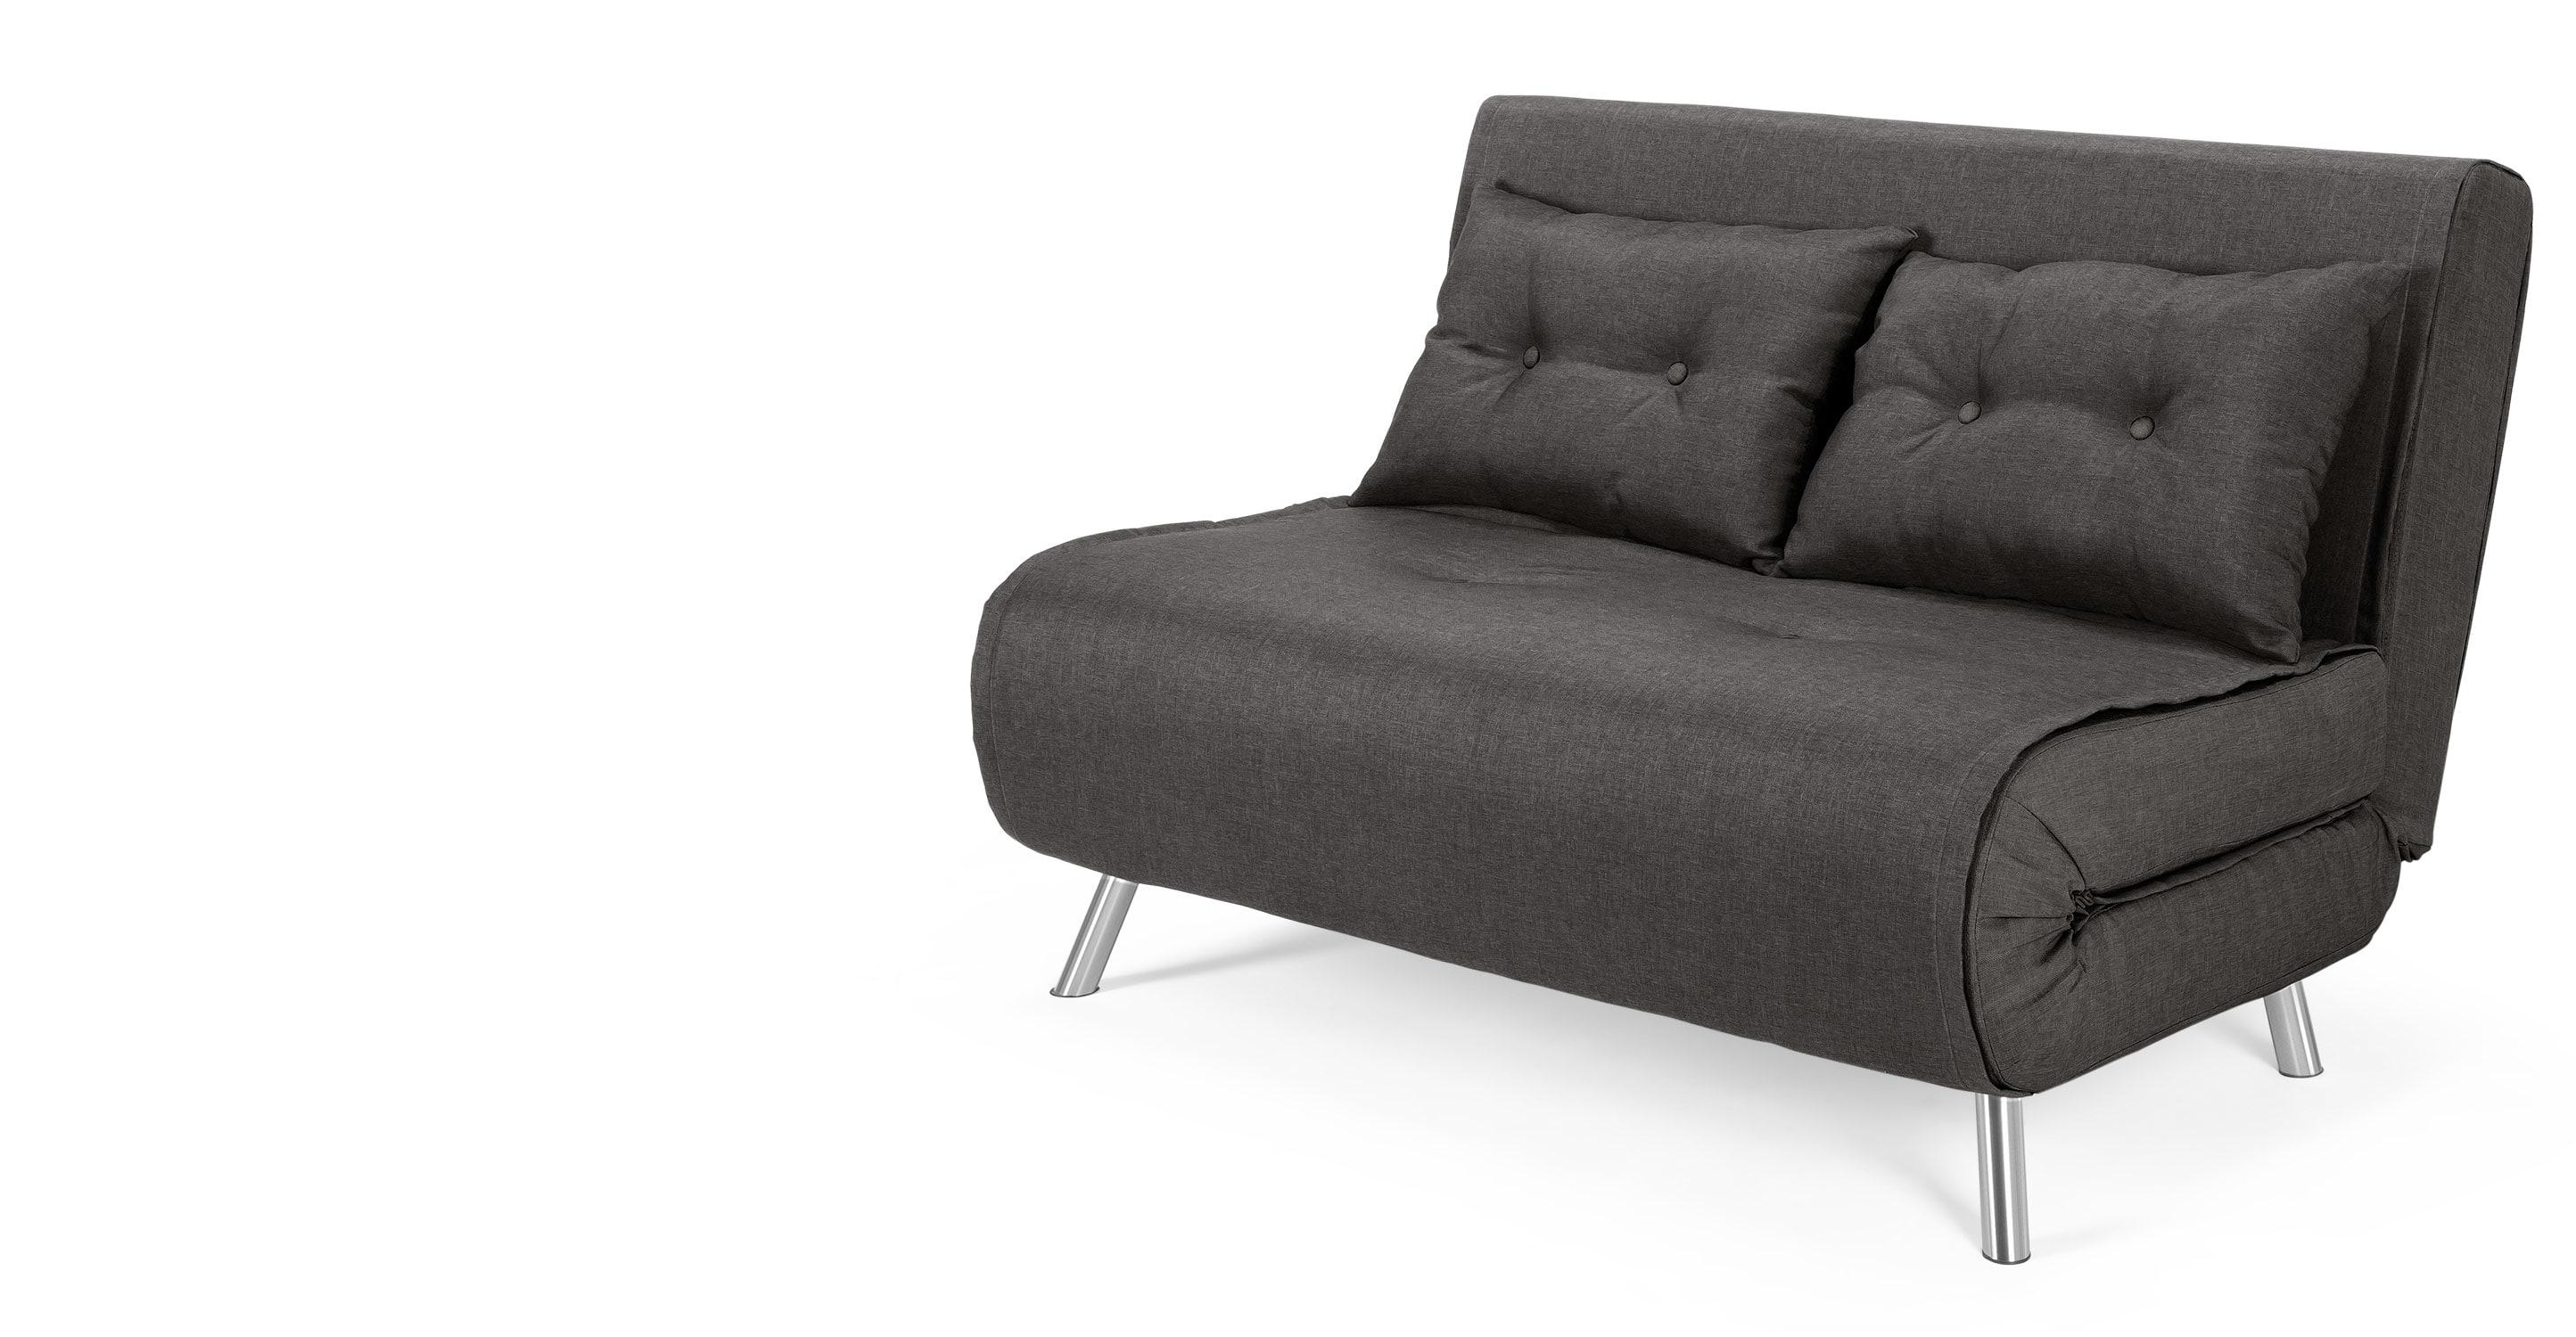 Haru Small Sofabed, Cygnet Grey | Made Throughout Small Grey Sofas (Image 6 of 20)